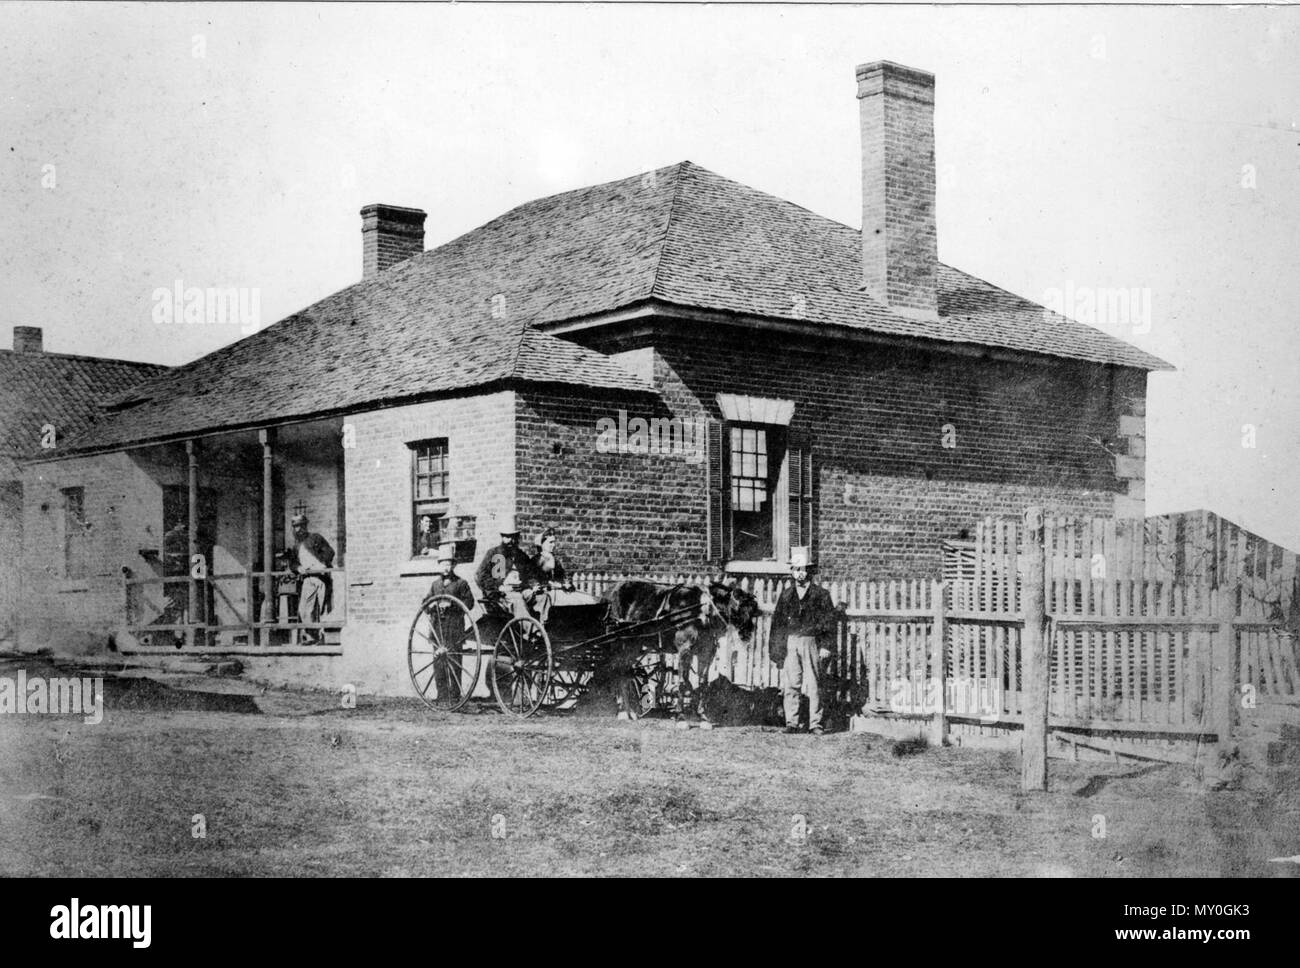 Brisbane Hospital, George Street, Brisbane, 1865. Moreton Bay Hospital opened in George Street on 12 January 1849 and changed its name to Brisbane Hospital in 1856. A new Brisbane Hospital was opened at Herston and patients were transferred there in 1867. - Stock Image